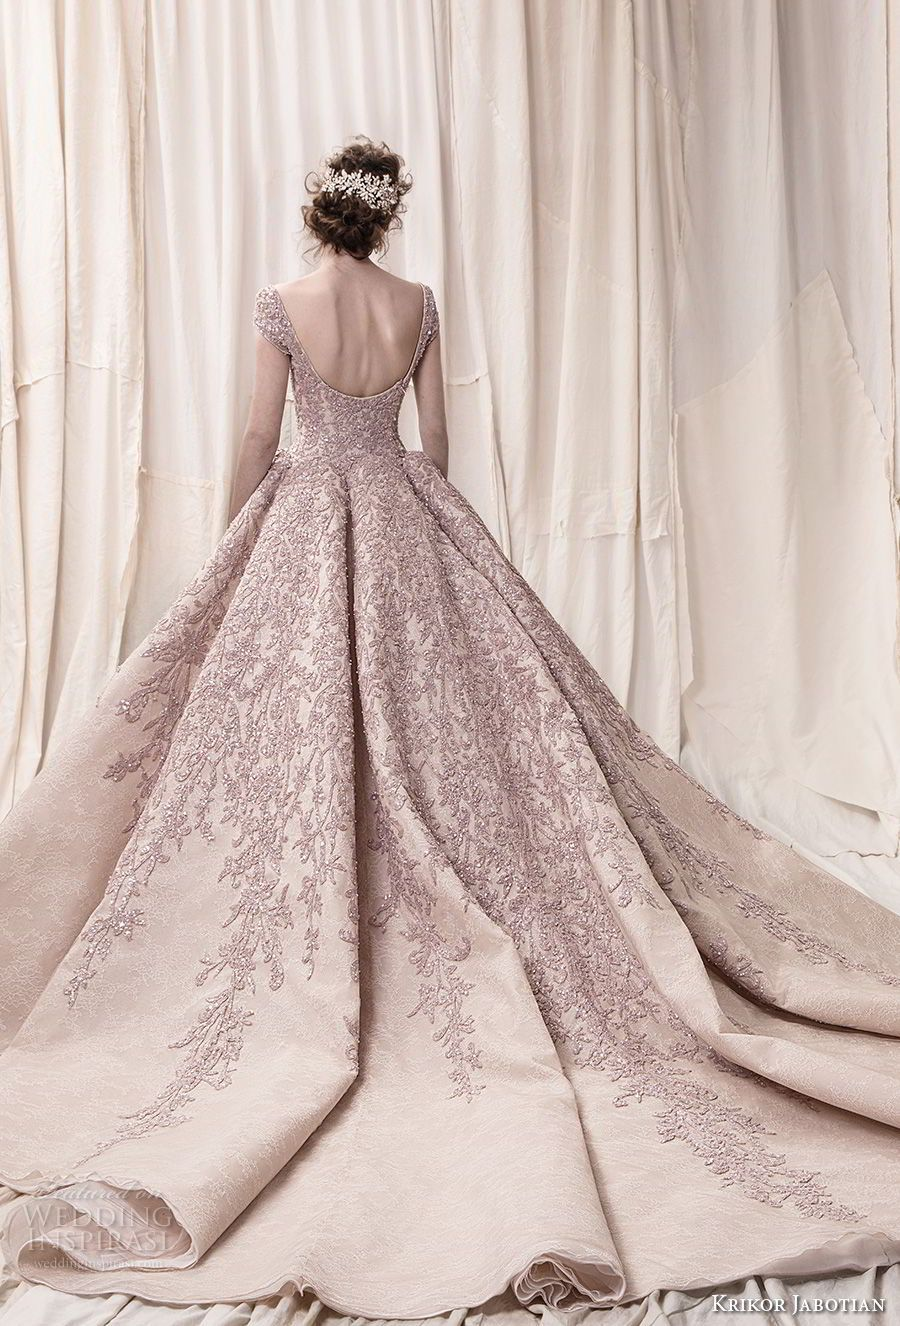 1683567795440 krikor jabotian spring 2018 bridal cap sleeves scoop neckline heavily  embeliished blush color glamorous princess ball gown a line wedding dress  open scoop ...